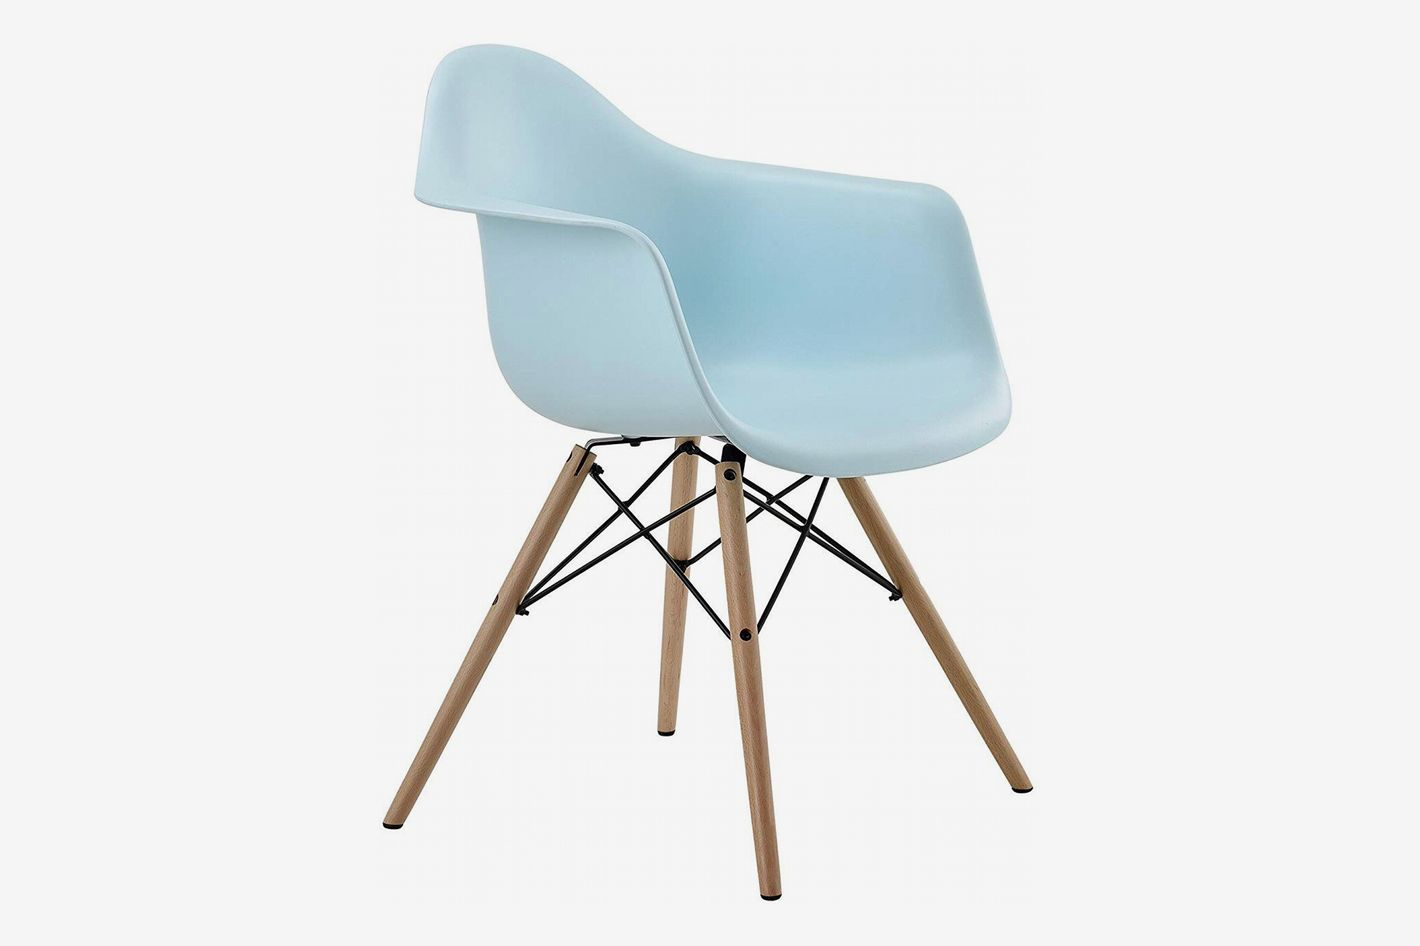 Dhp mid century modern chair with molded arms and wood legs light blue